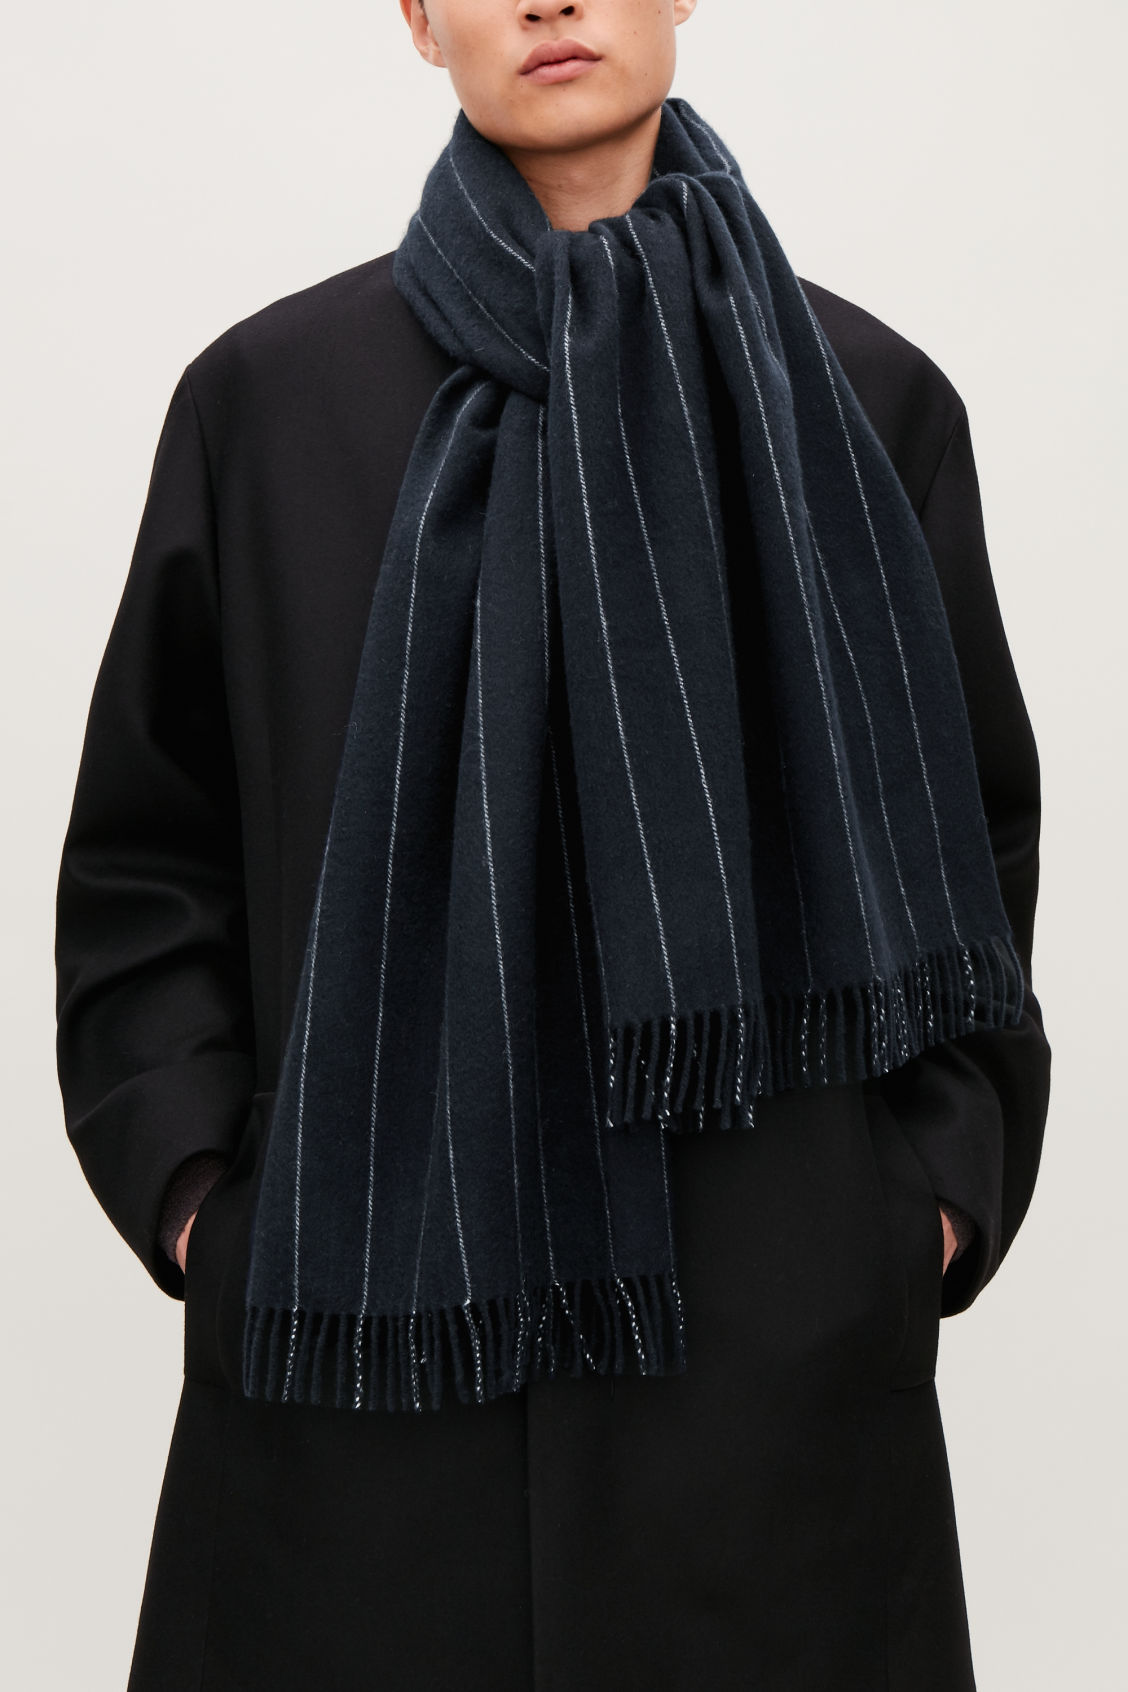 Detailed image of Cos striped wool scarf in blue